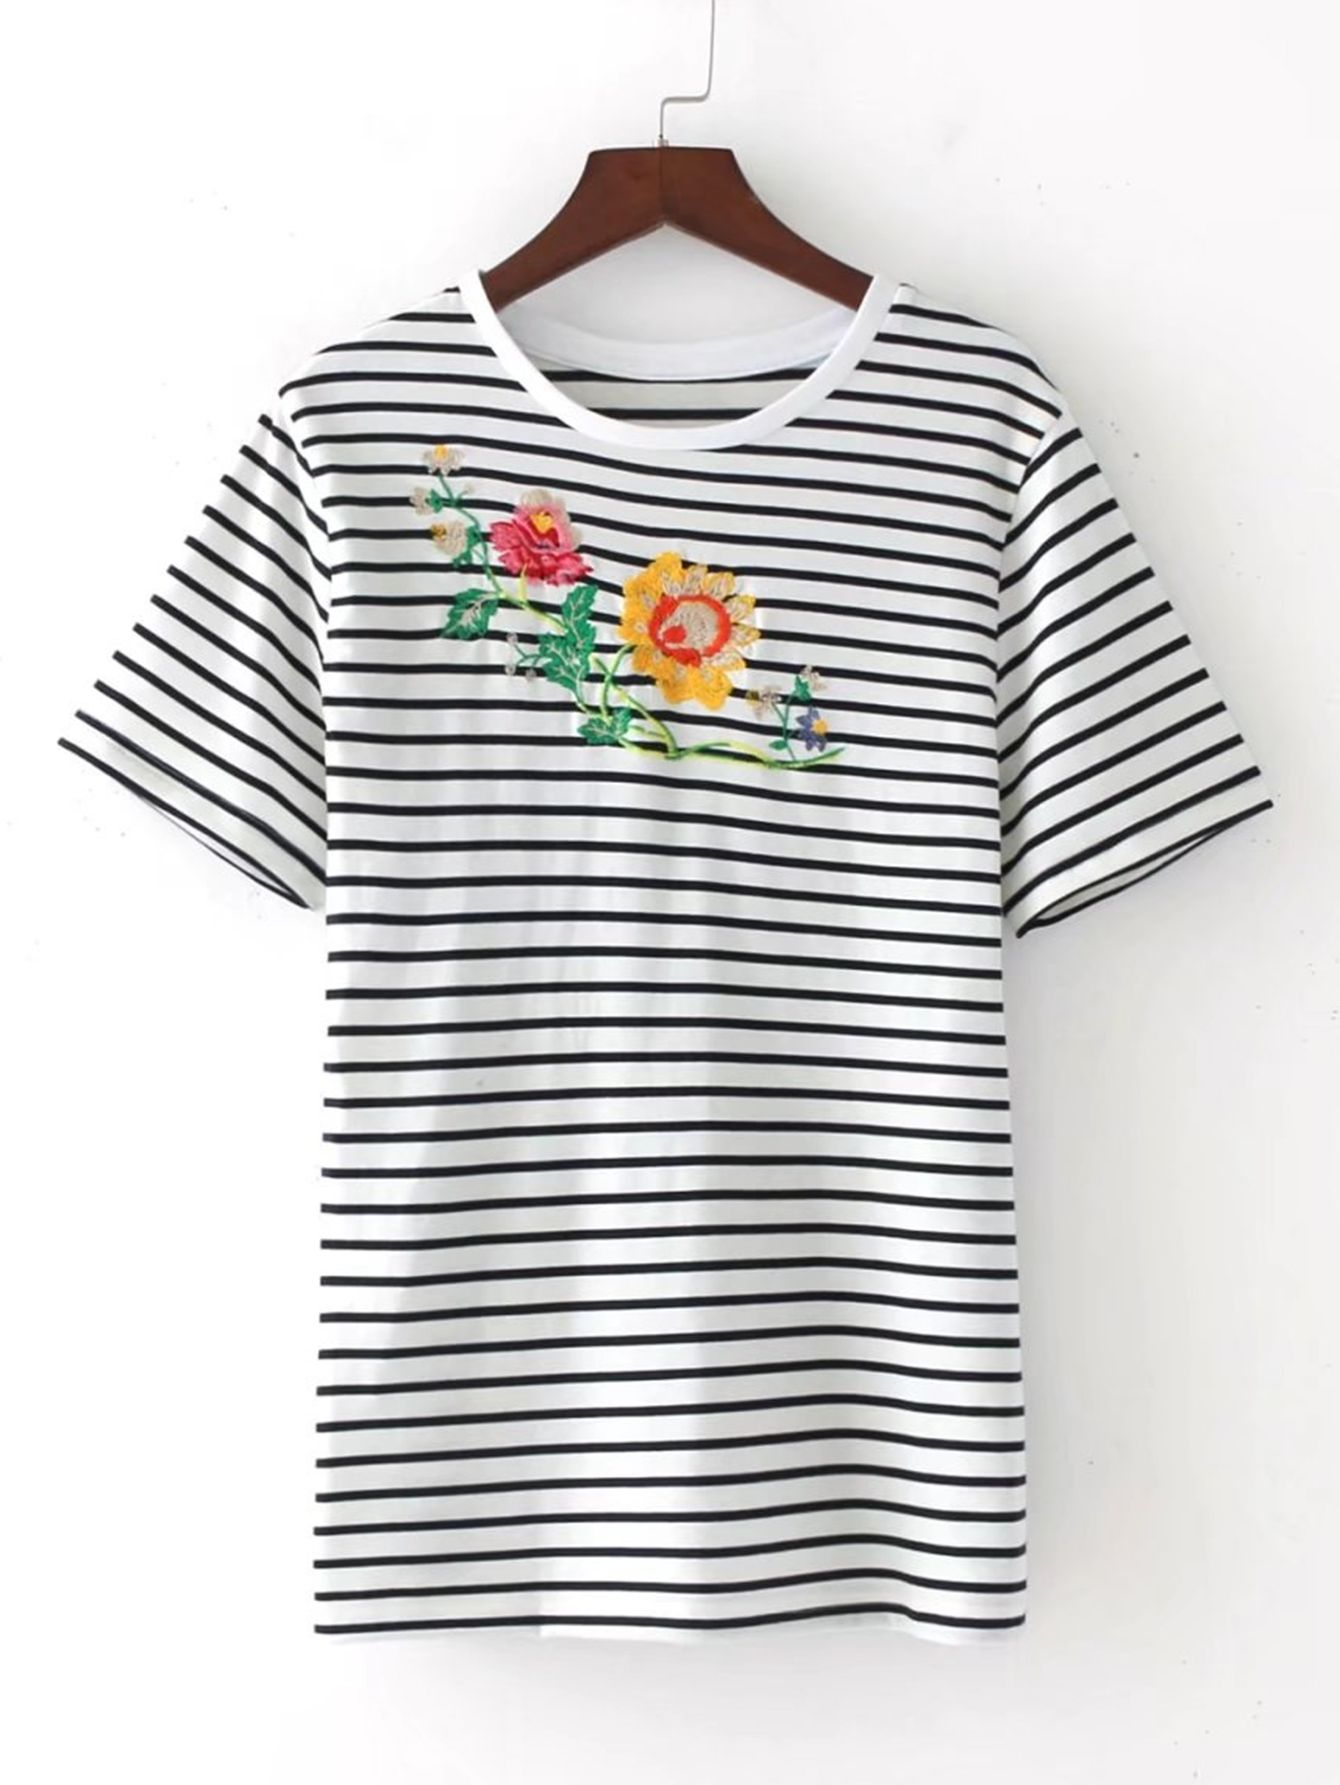 aeab3c0f13 Shop Contrast Striped Embroidery Tee online. SheIn offers Contrast Striped  Embroidery Tee & more to fit your fashionable needs.